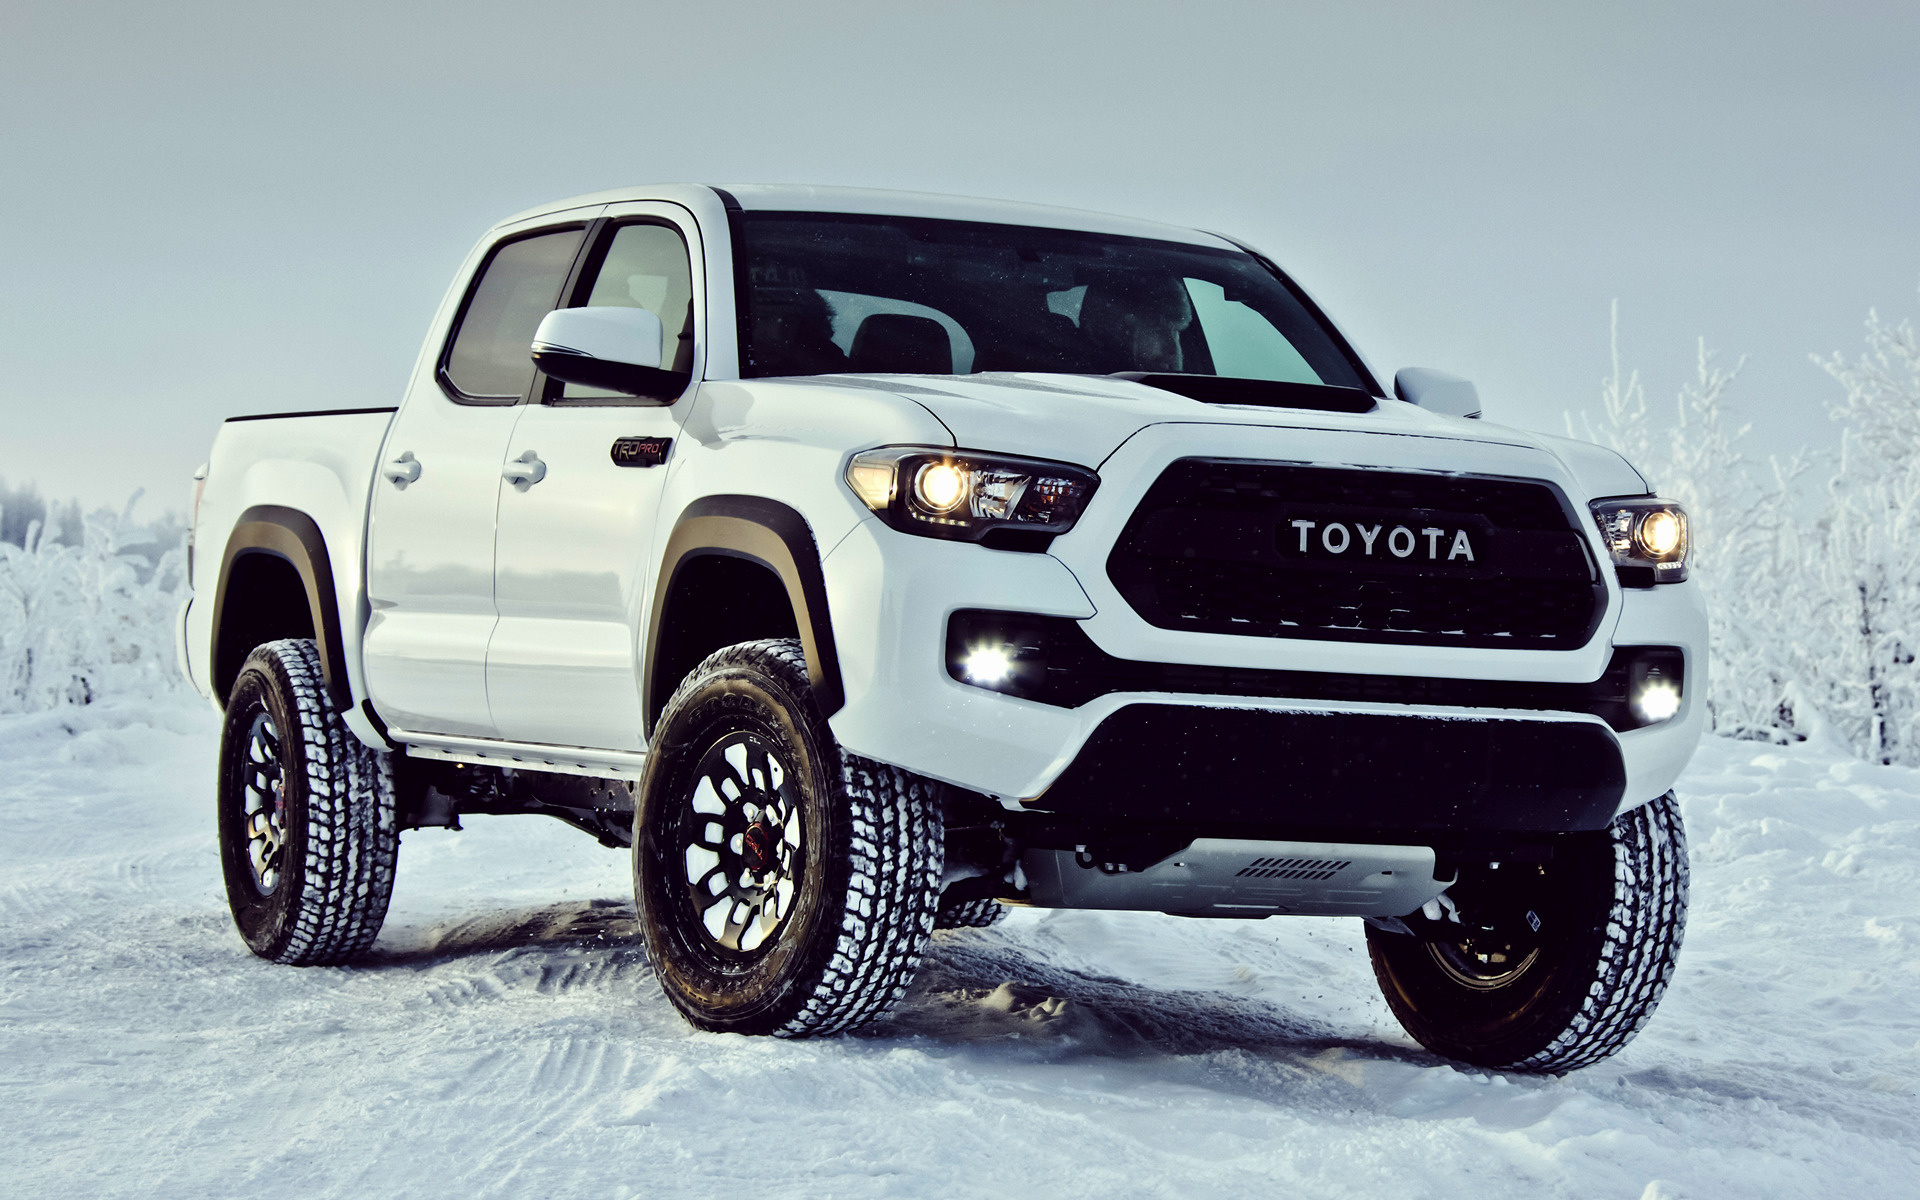 2017 Toyota Tacoma Trd Pro Double Cab Wallpapers And Hd